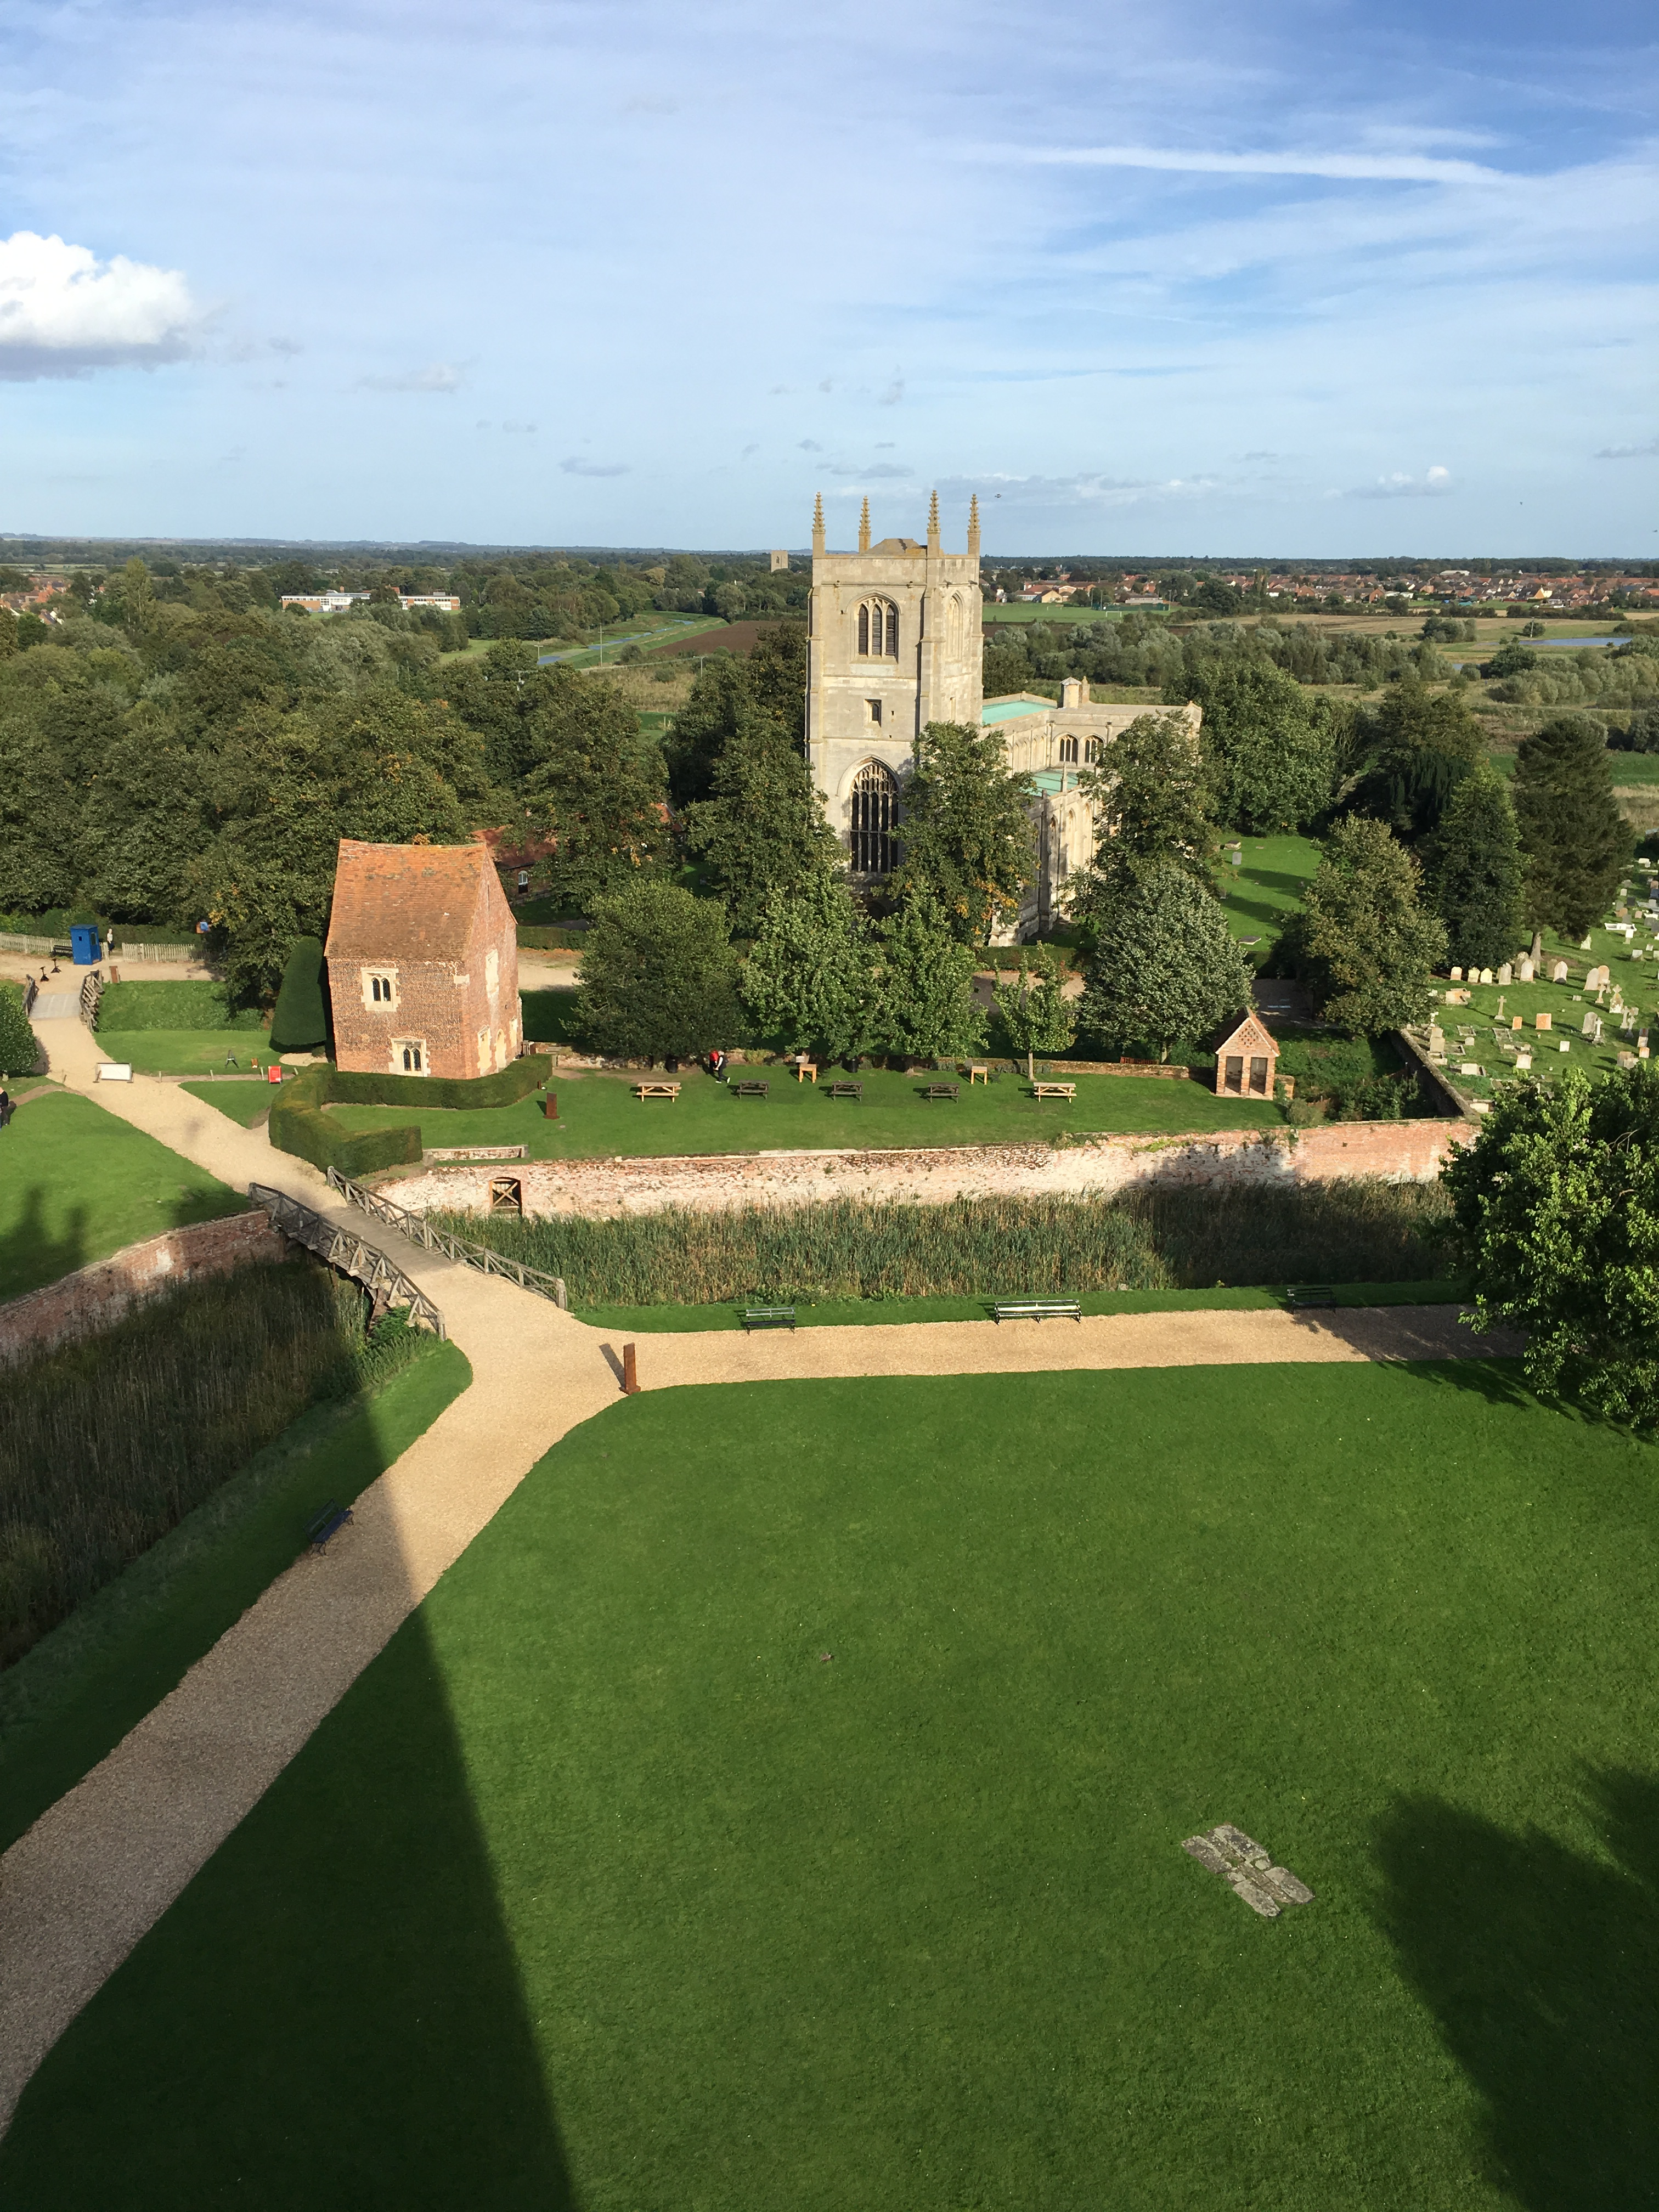 A View from the Tower of Tattershall Castle towards the old gatehouse